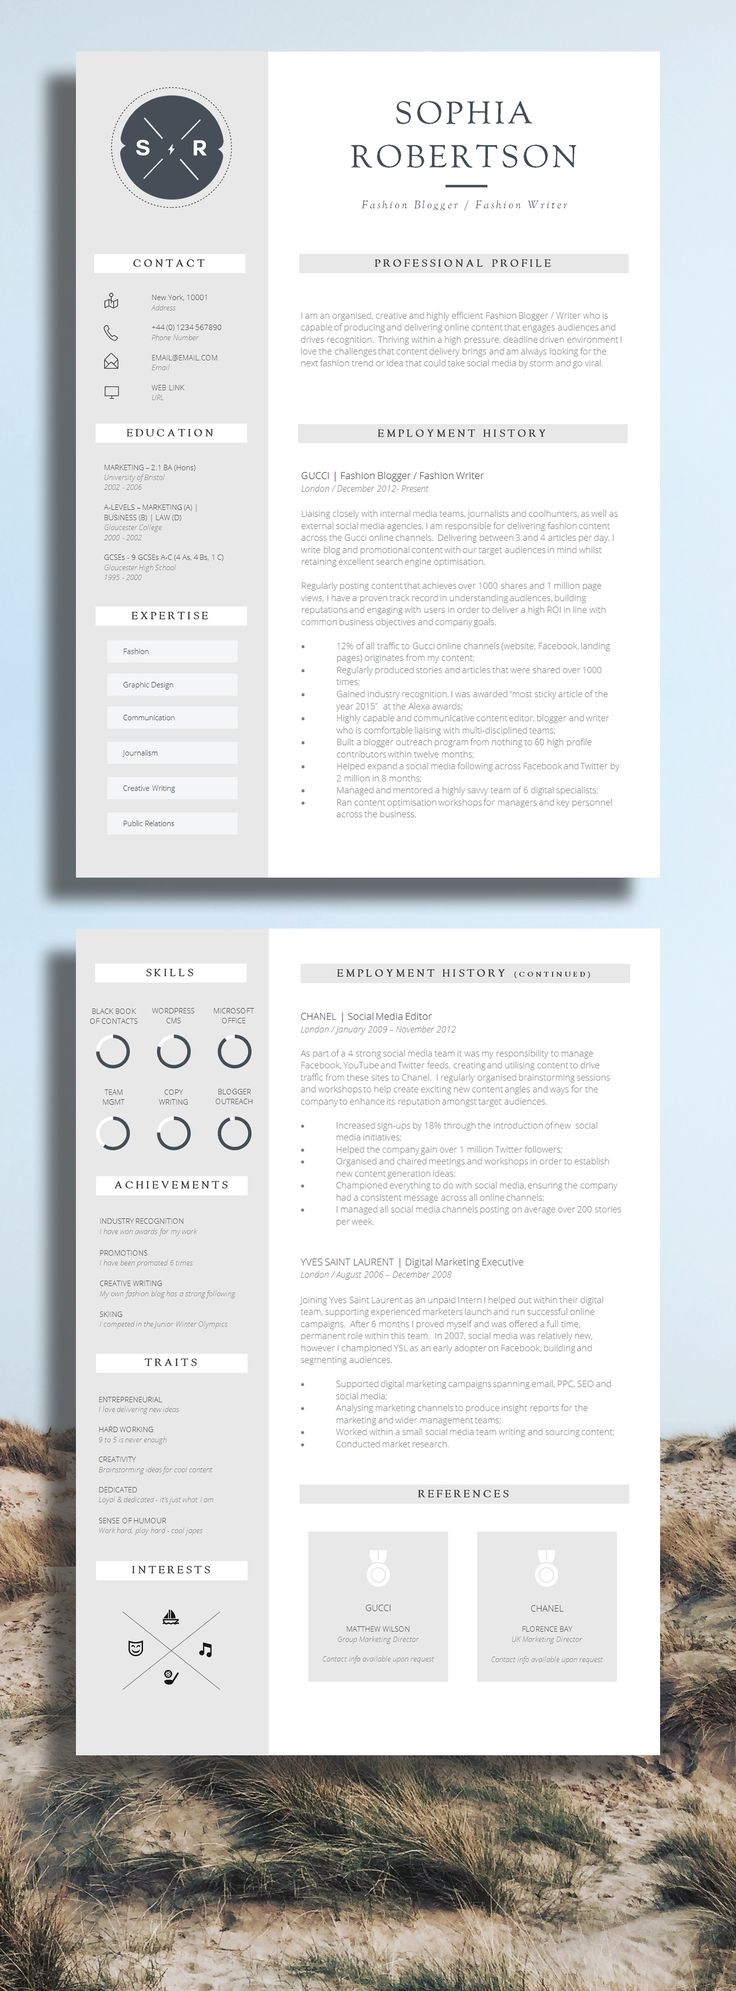 Effective Cv Examples Uk Good Cv Examples